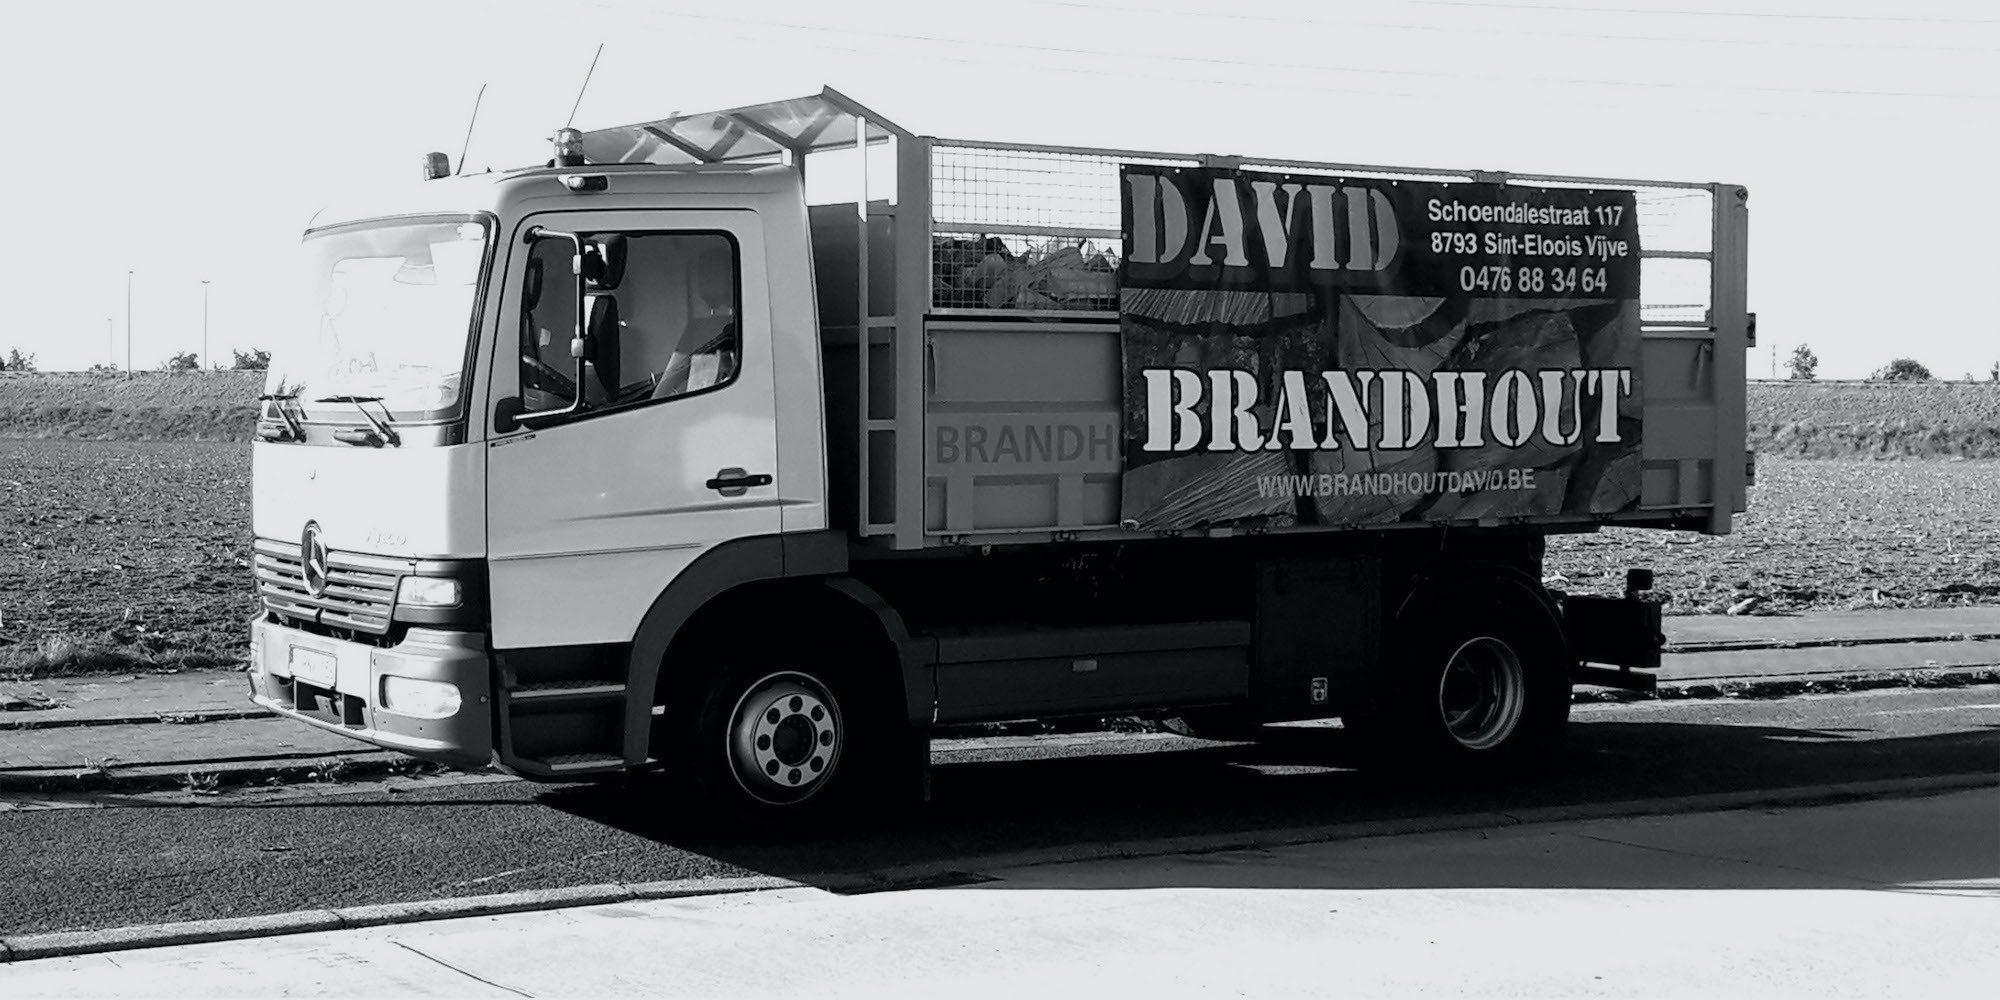 Header Brandhout David - Pellets Waregem